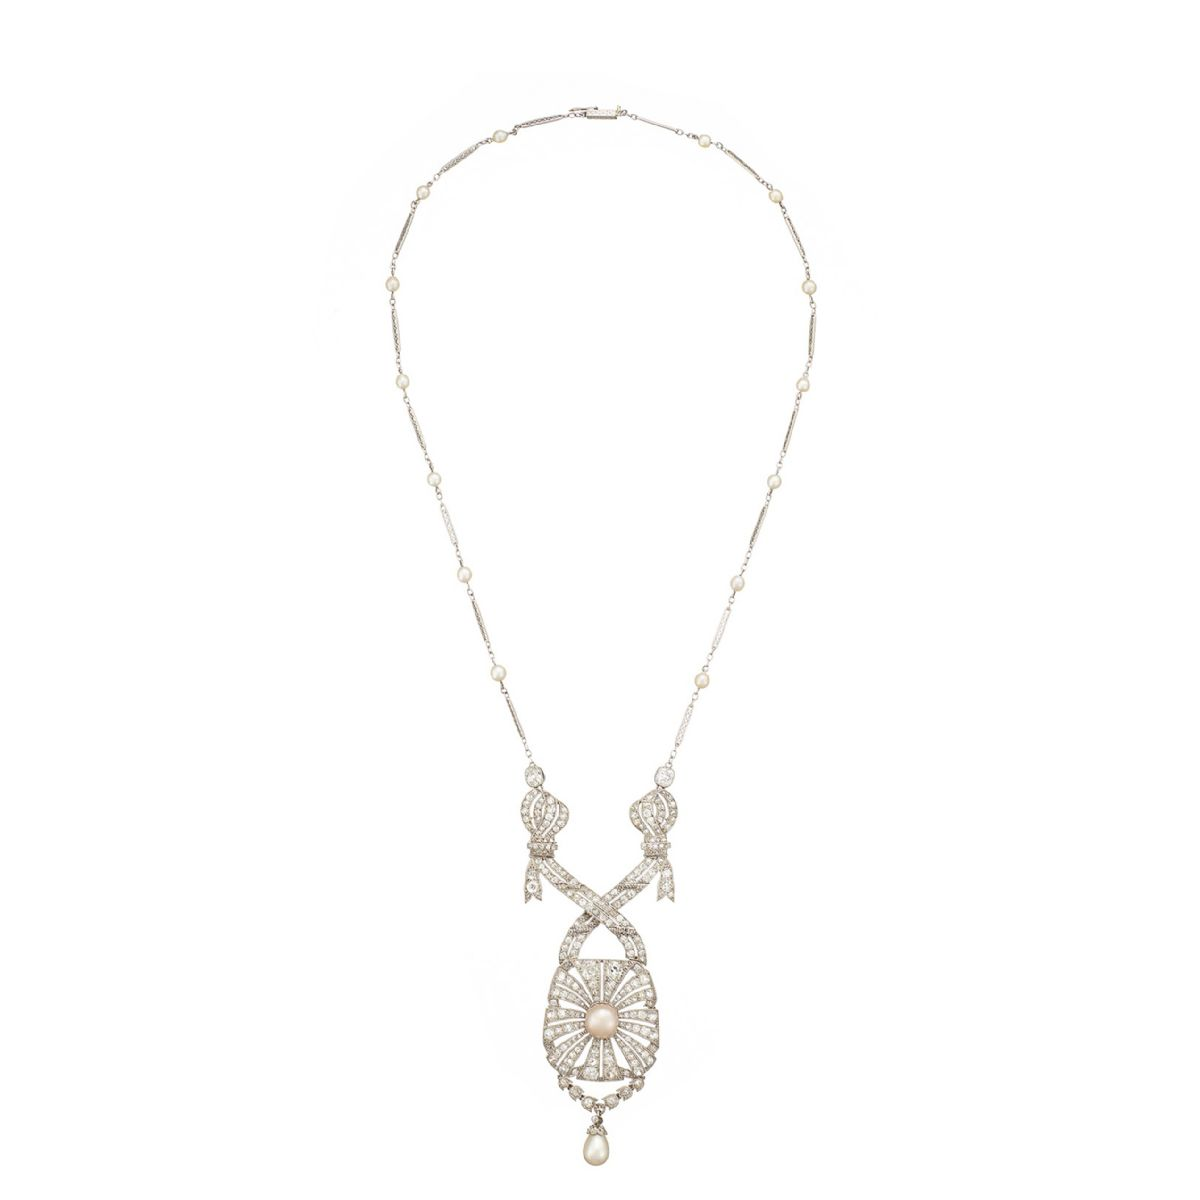 Edwardian platinum diamond and natural pearl necklace - Necklace